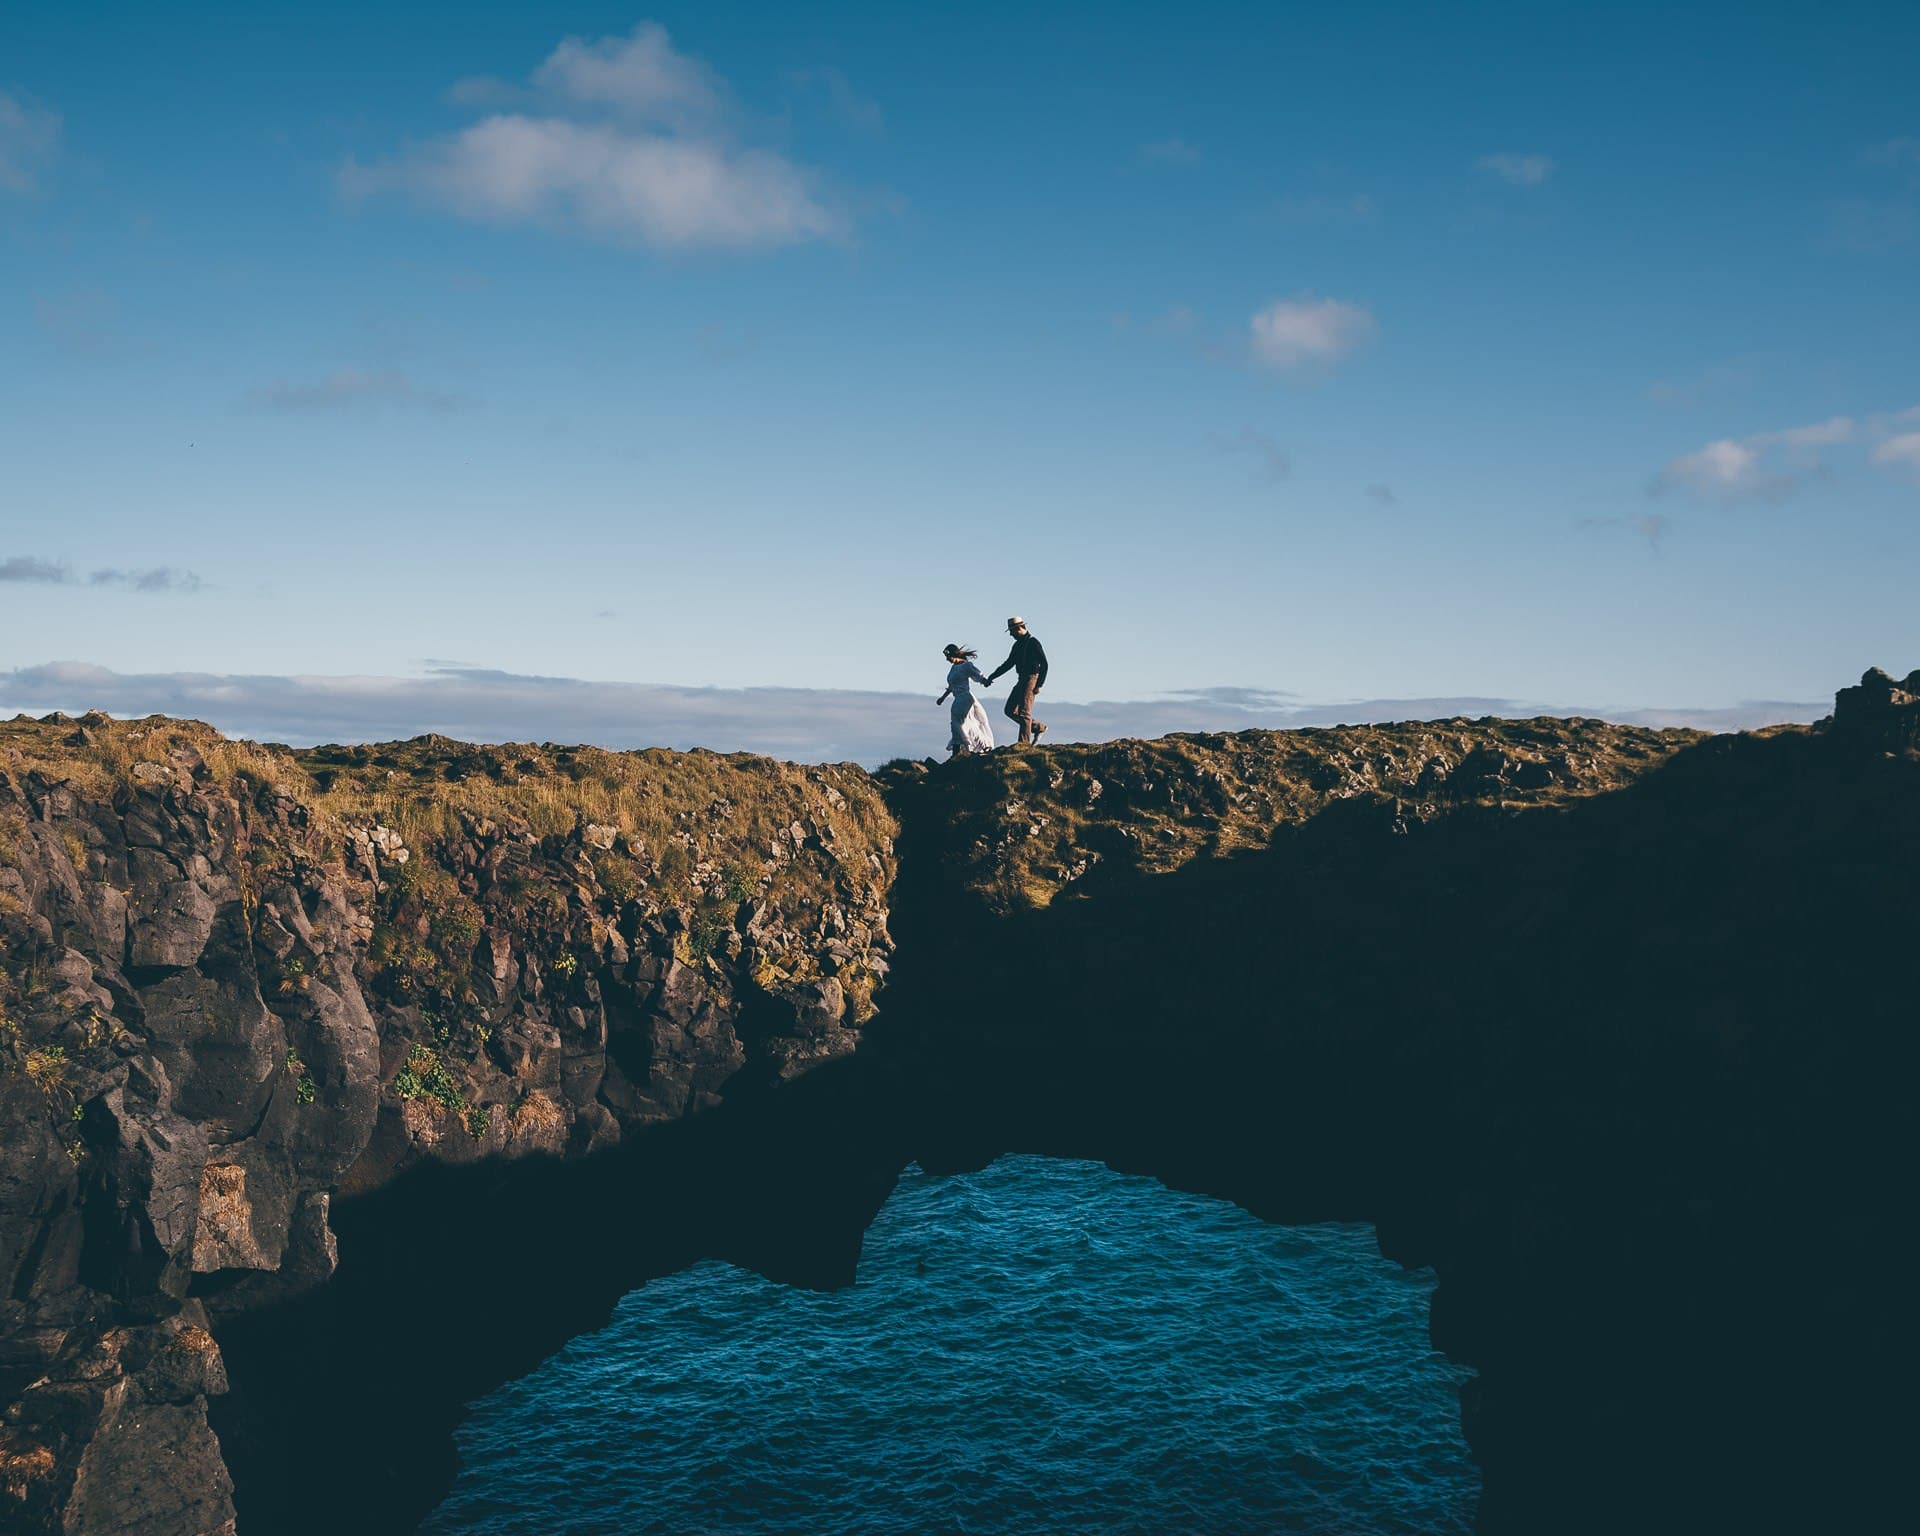 Destination-Wedding-Photographer-Iceland-Arnarstapi-Cliffs-MathiasBrabetz-8